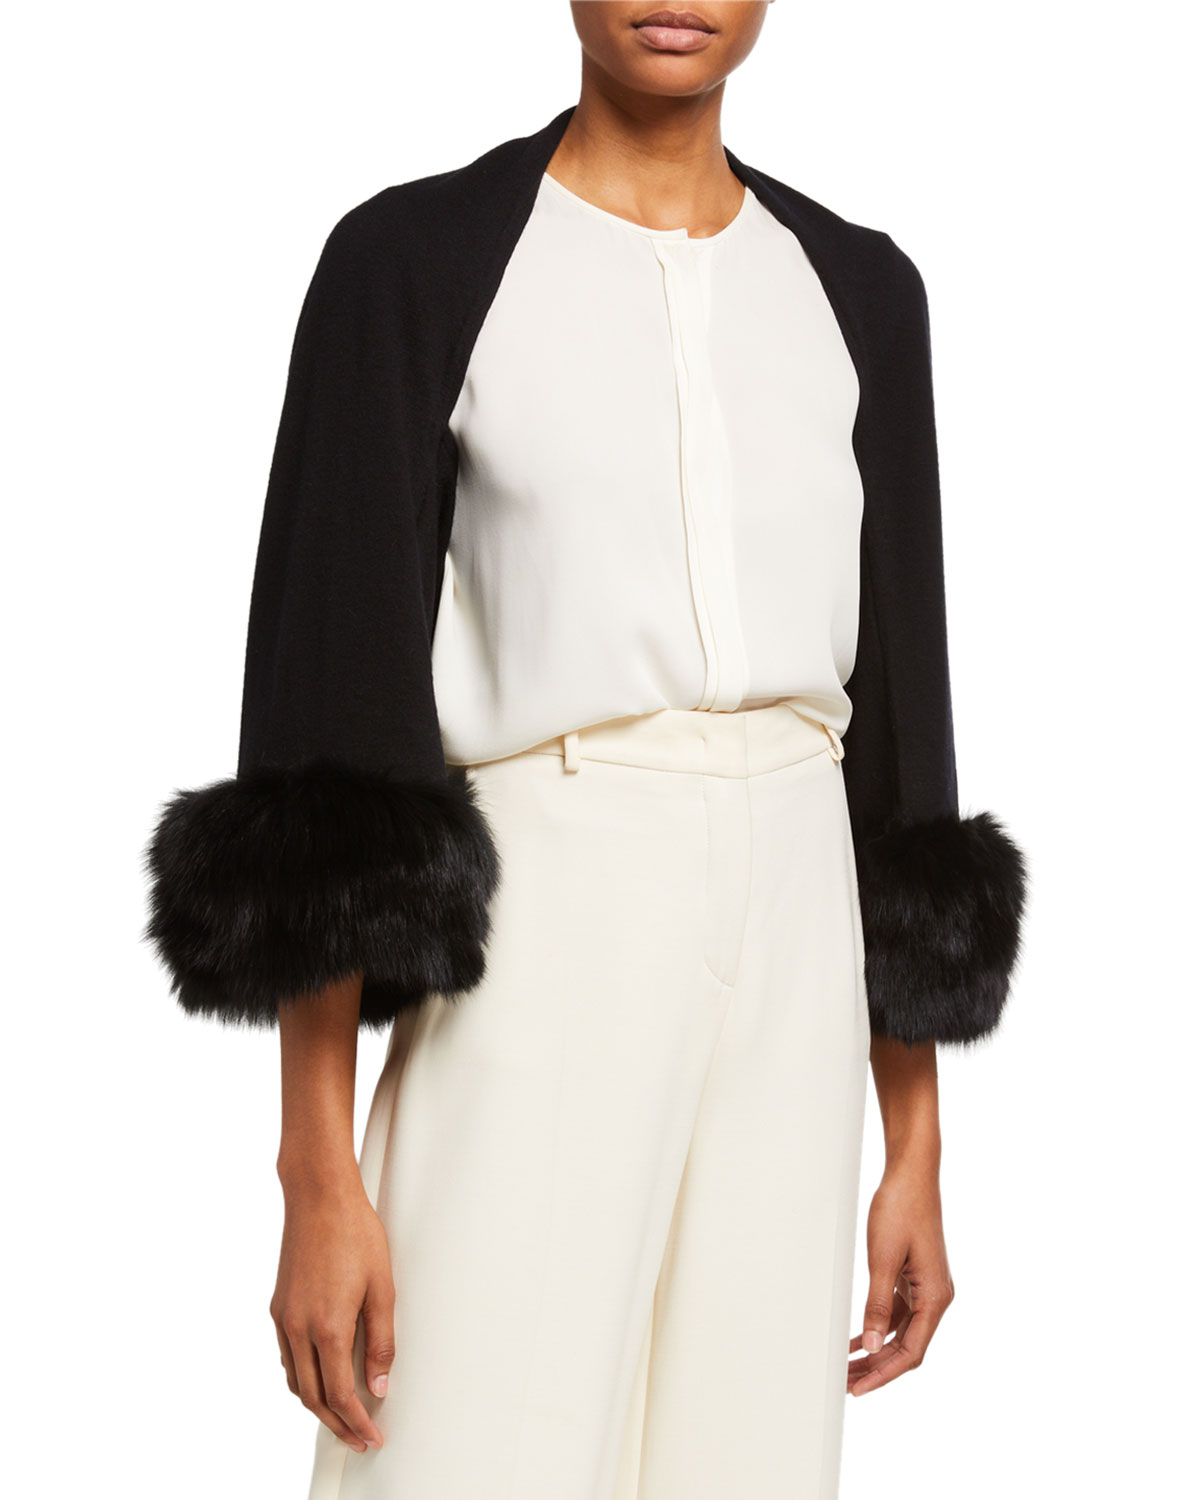 Belle Fare Tops CASHMERE BLEND SHRUG W/ OVERSIZED FOX FUR CUFFS